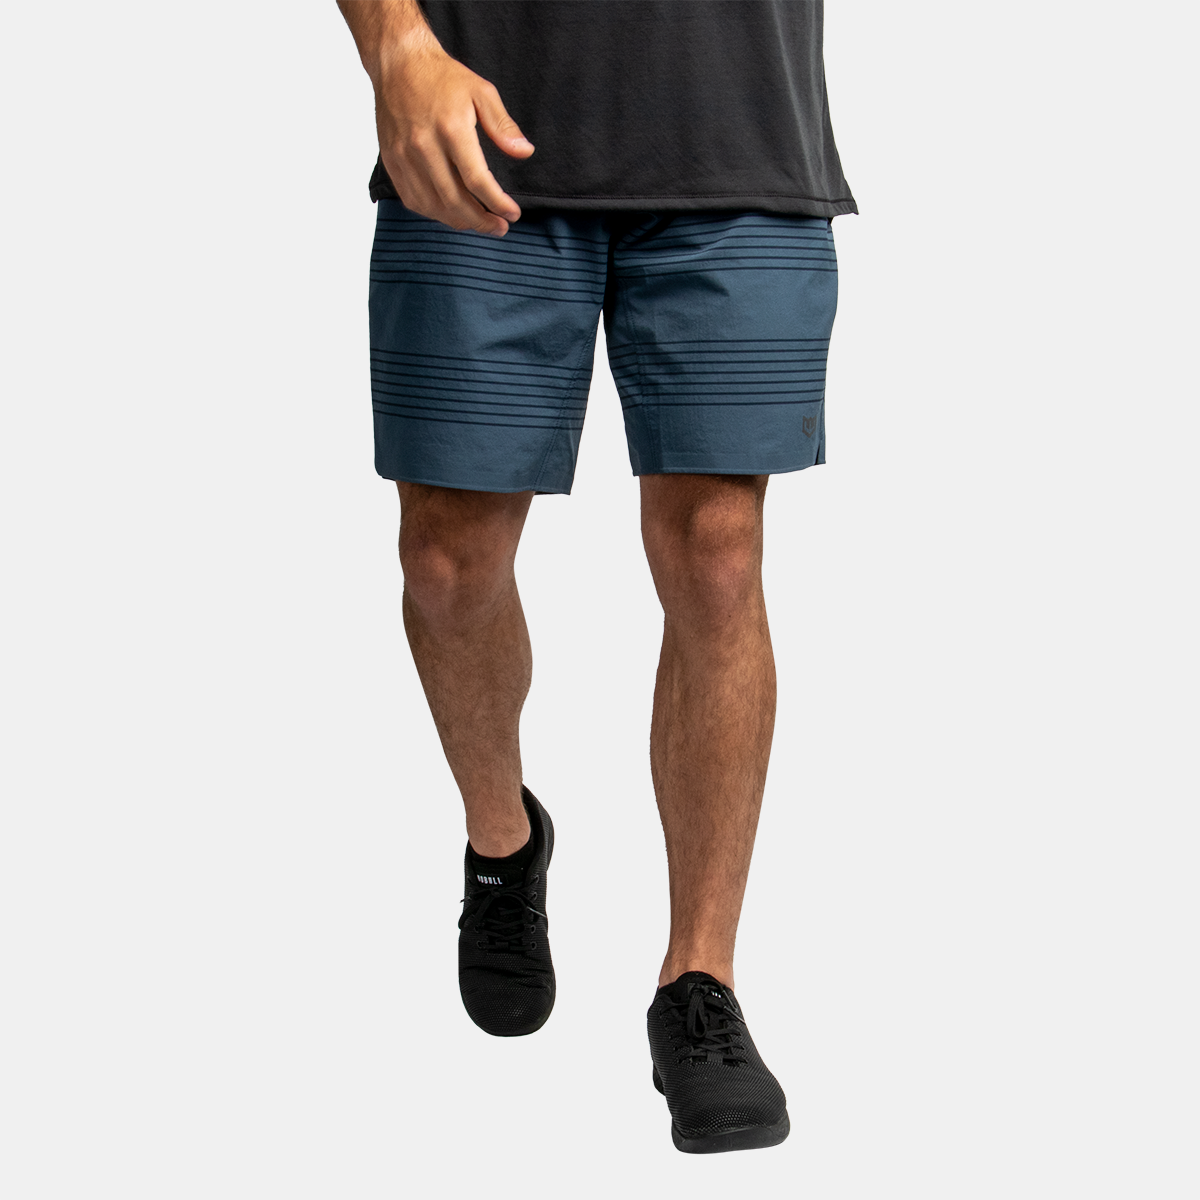 Men's Technical Short 2.0 - Navy w/Black Stripe